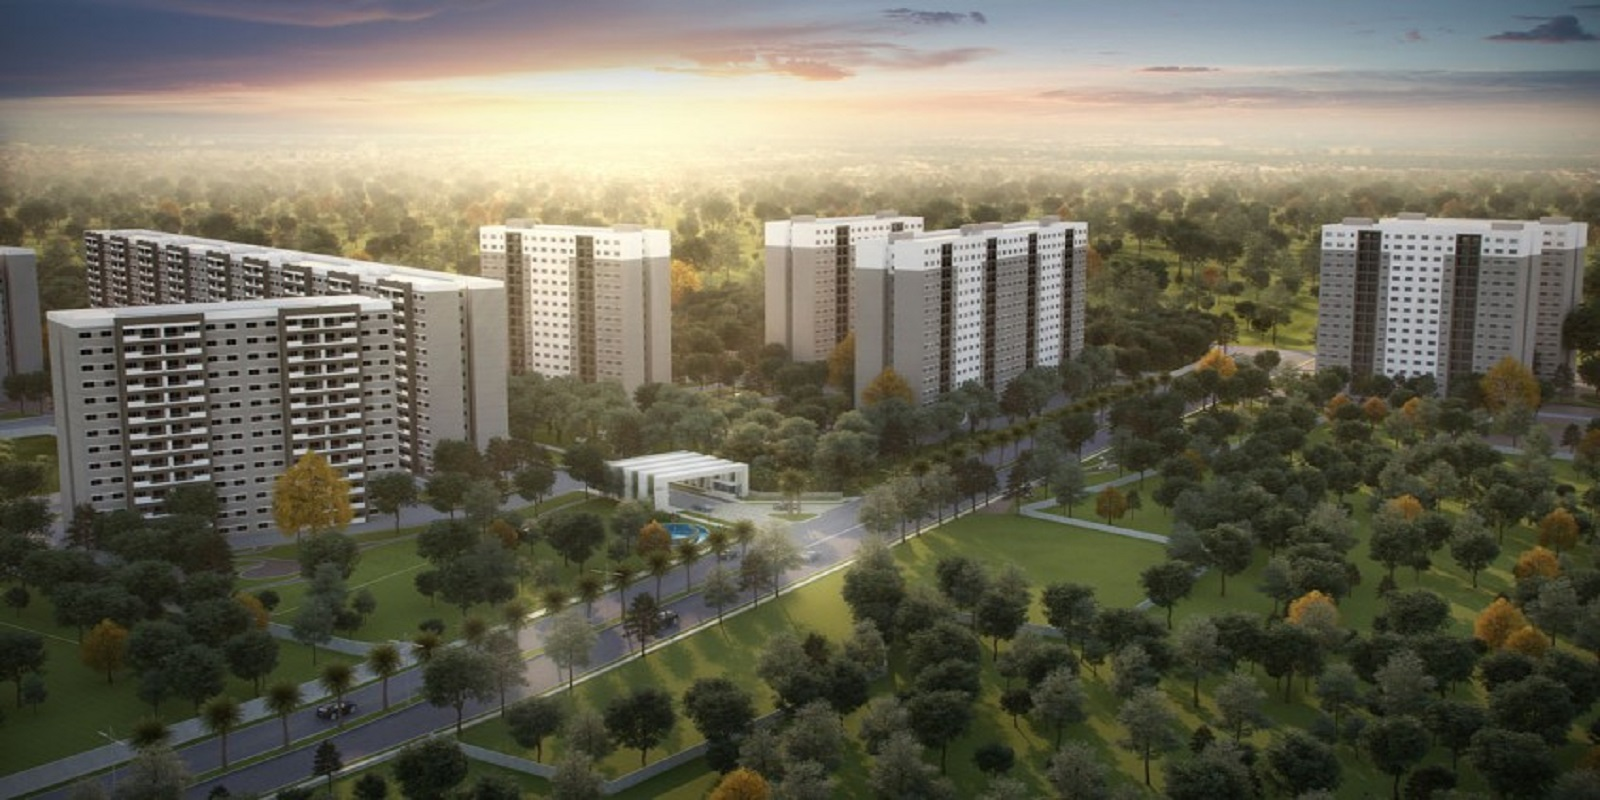 sobha tropical greens phase 25 wing 32 to 34 project large image2